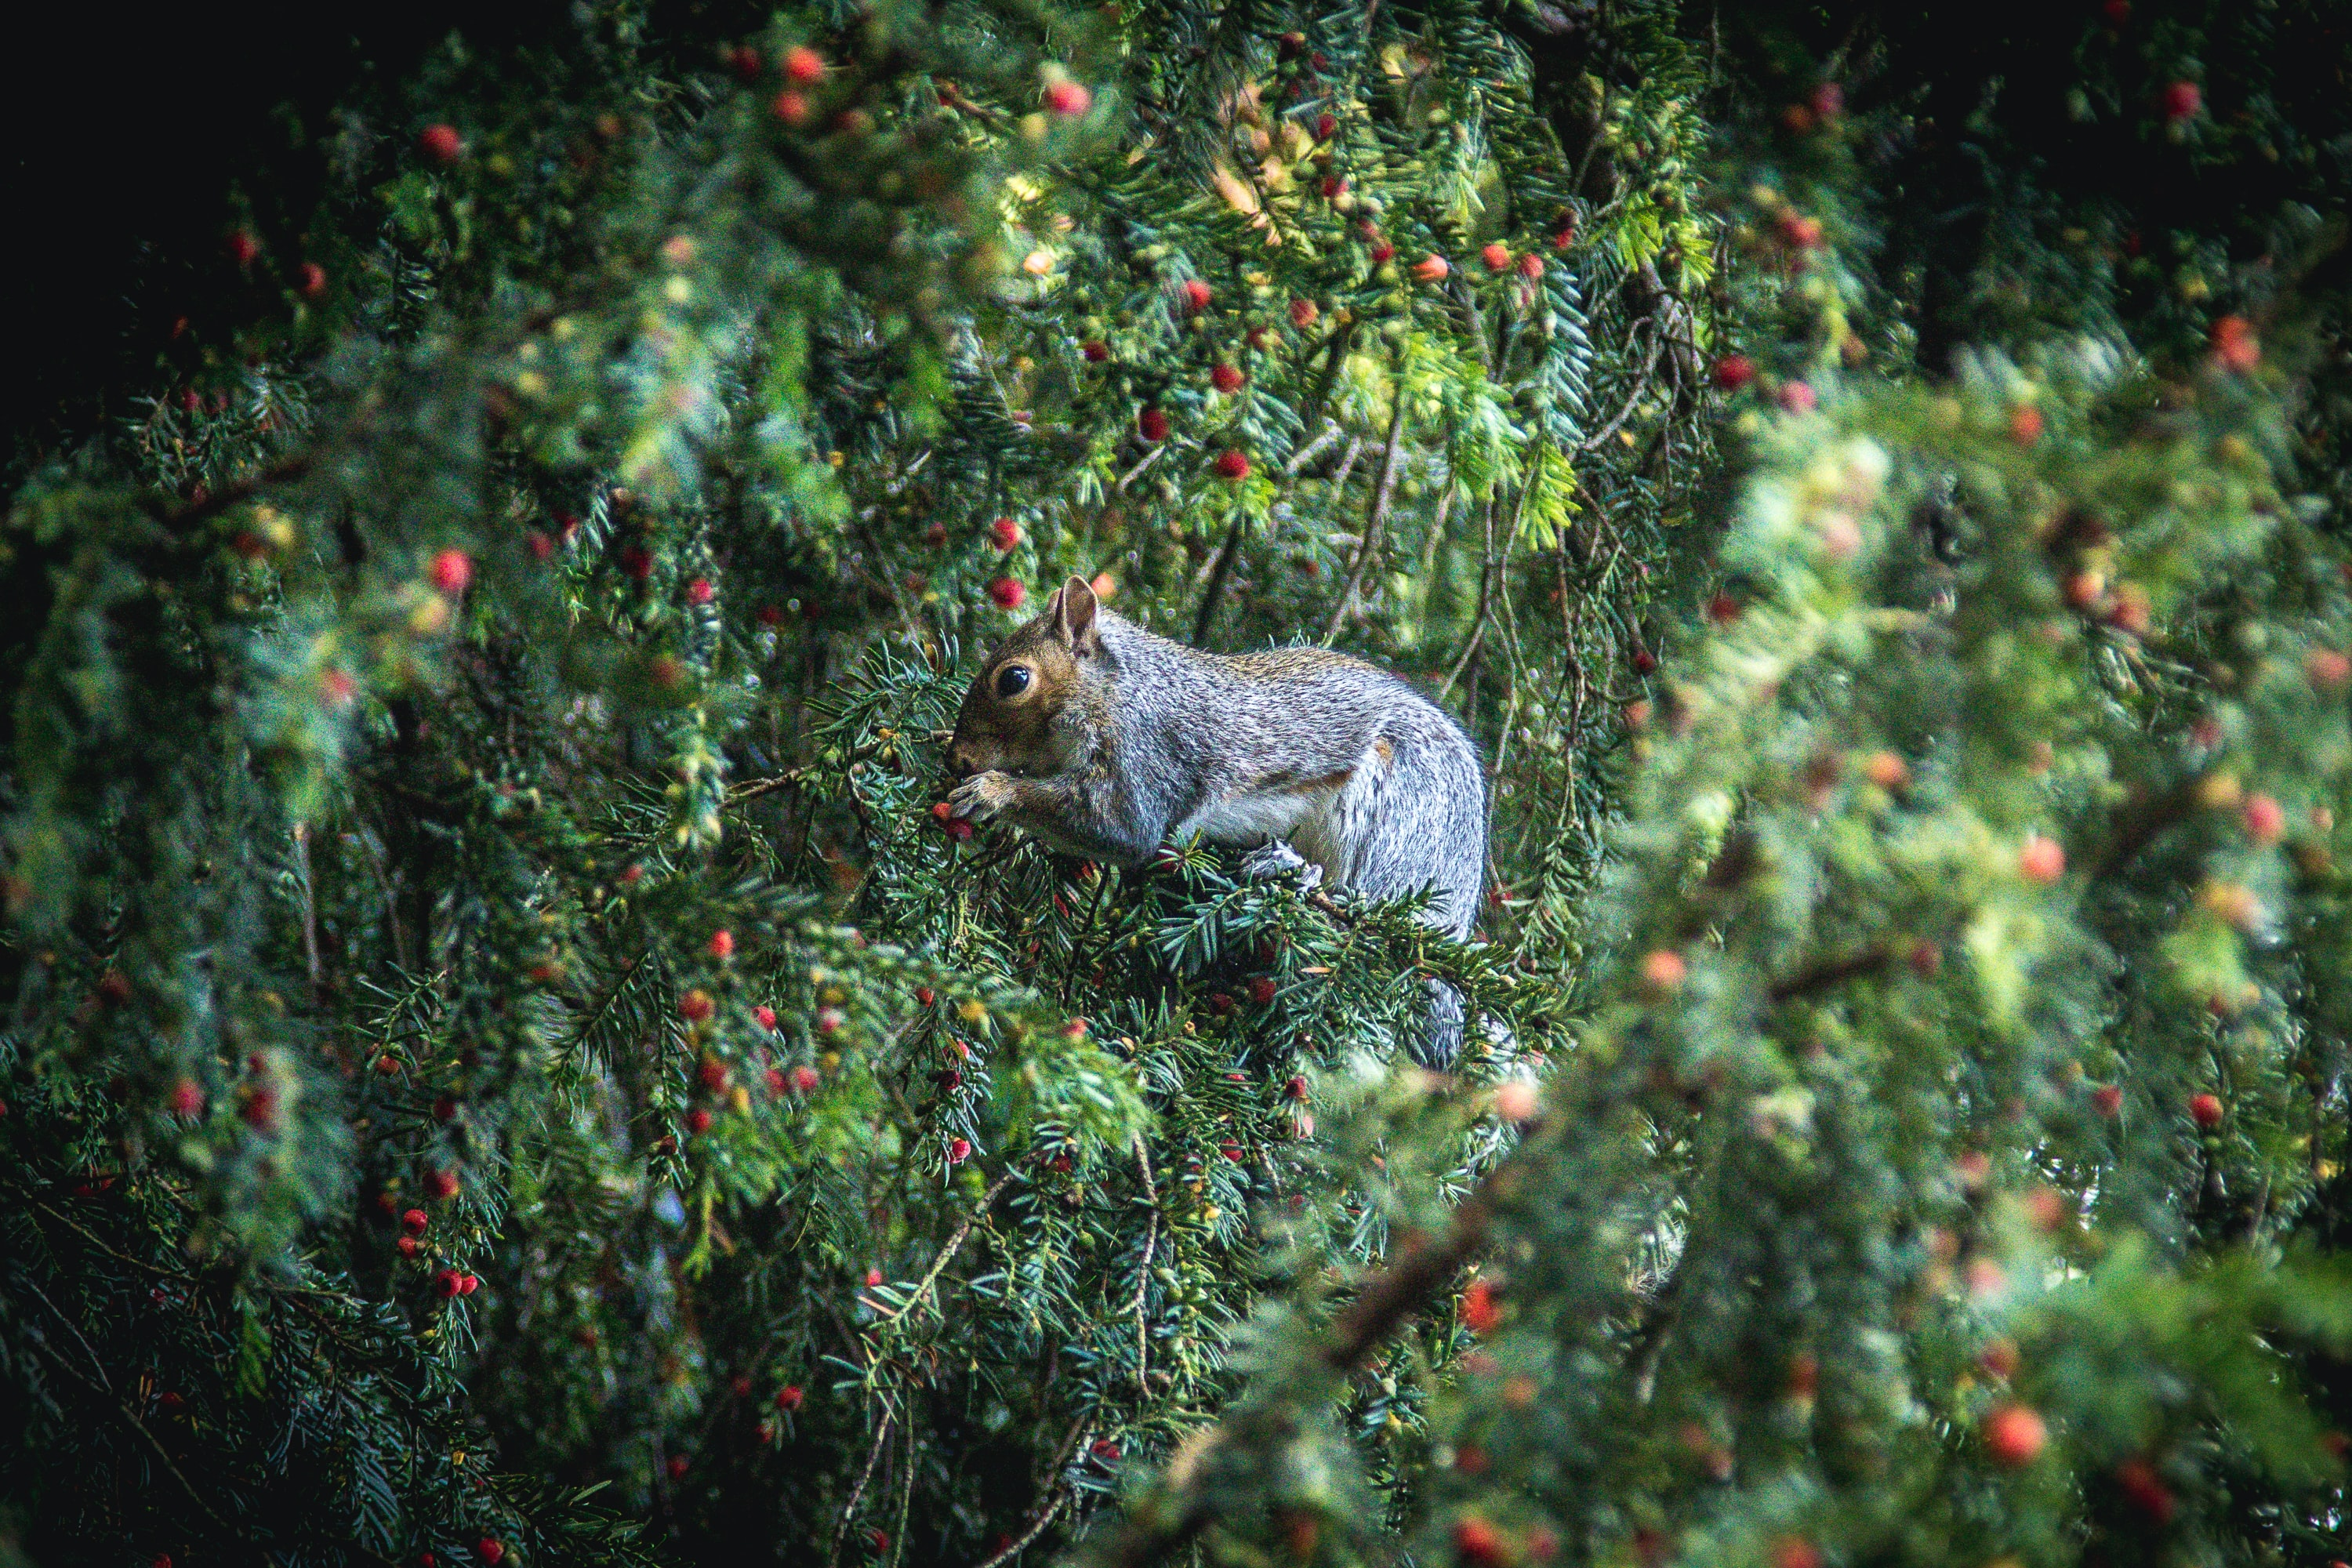 squirrel eating fruits during daytime